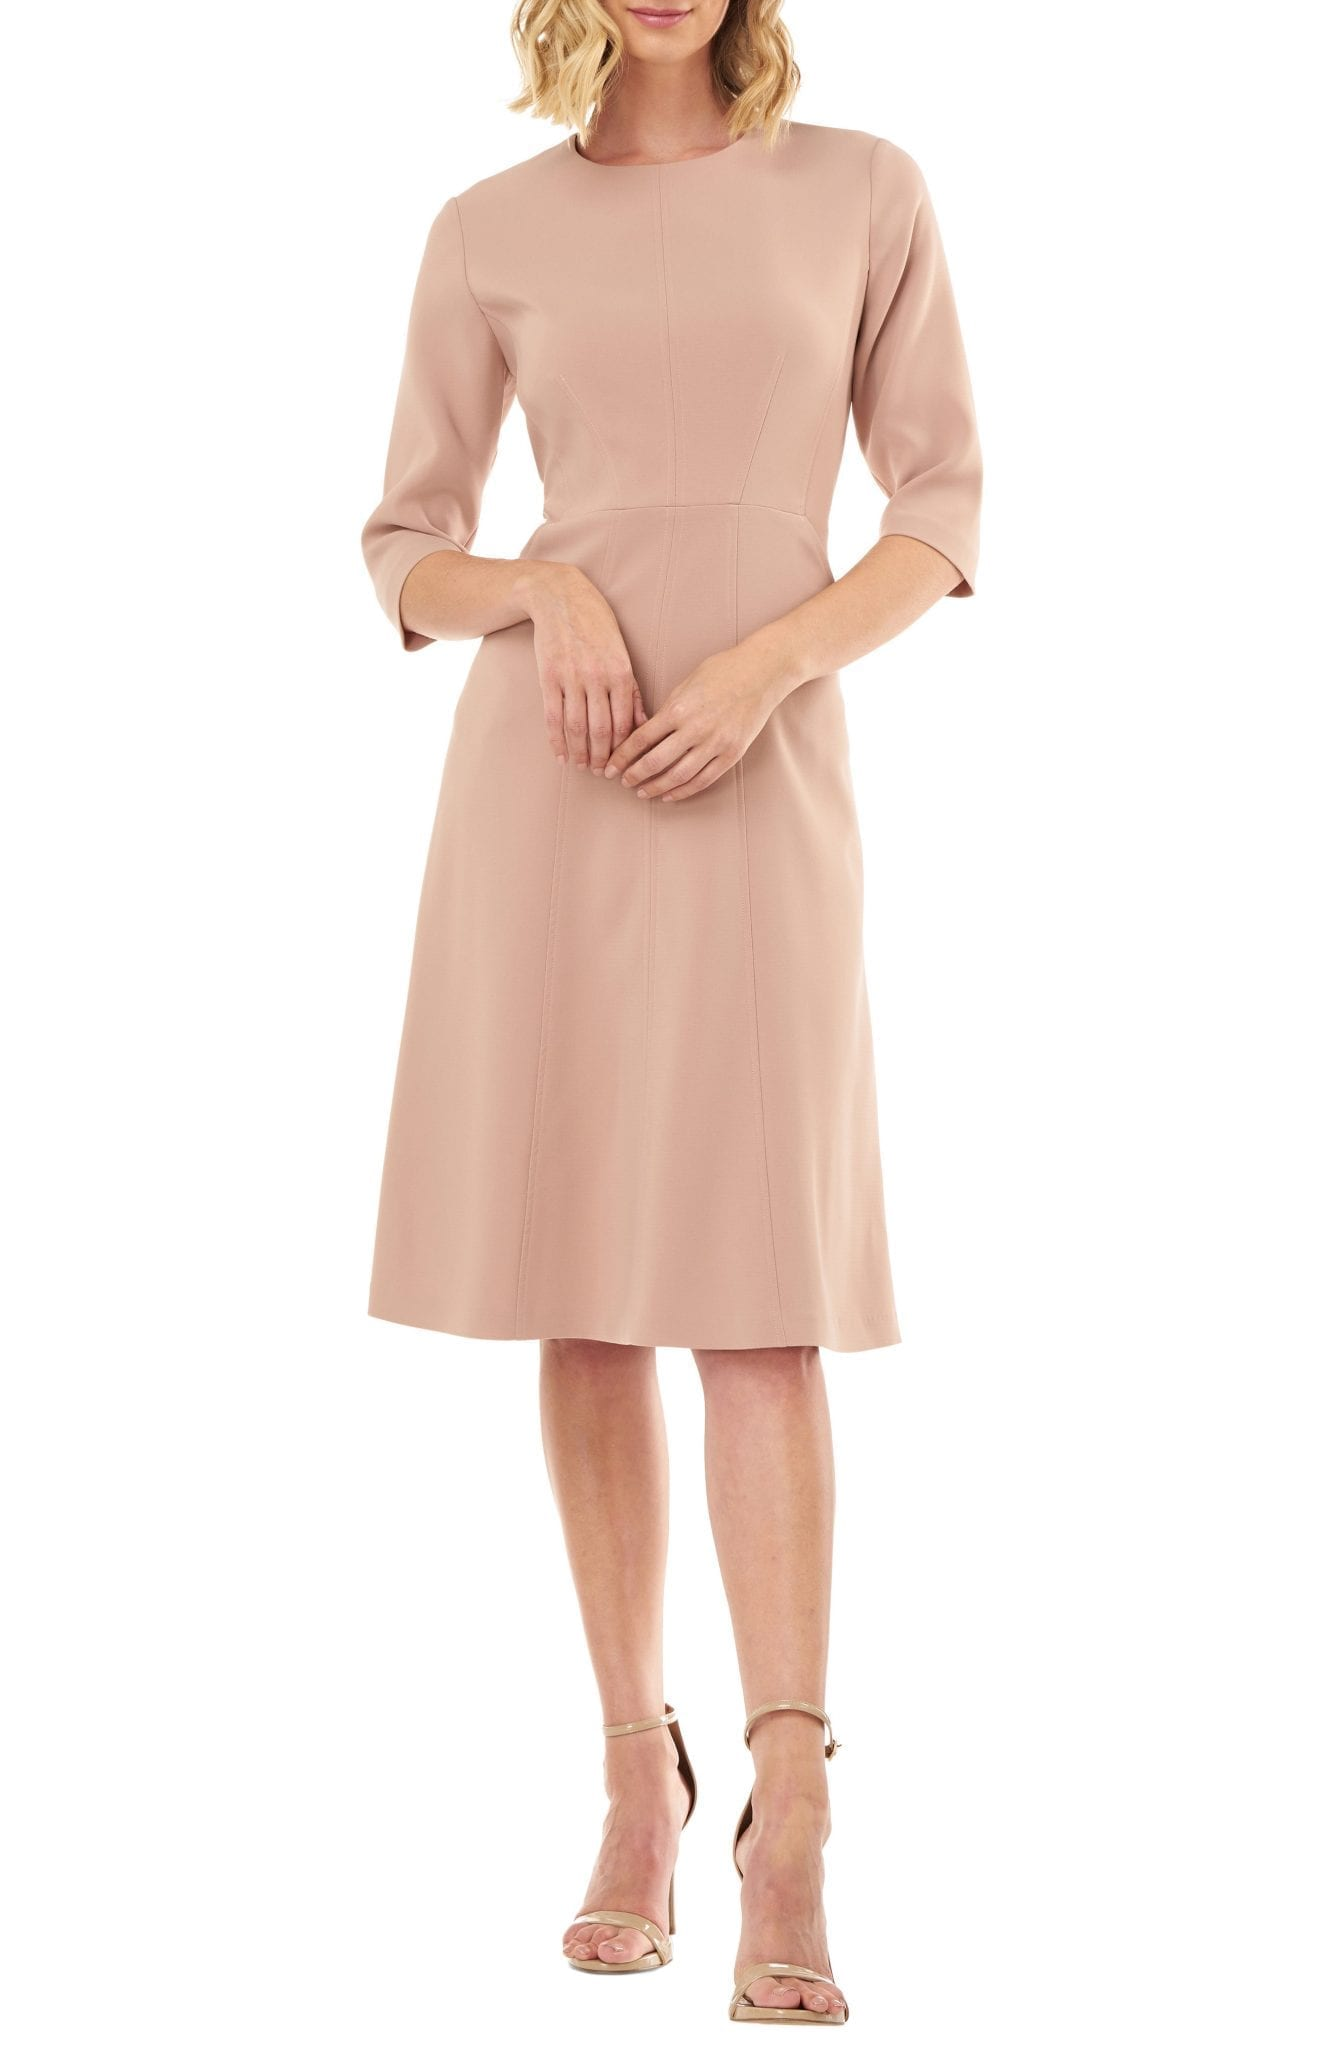 KAY UNGER Stretch Crepe A-Line Dress